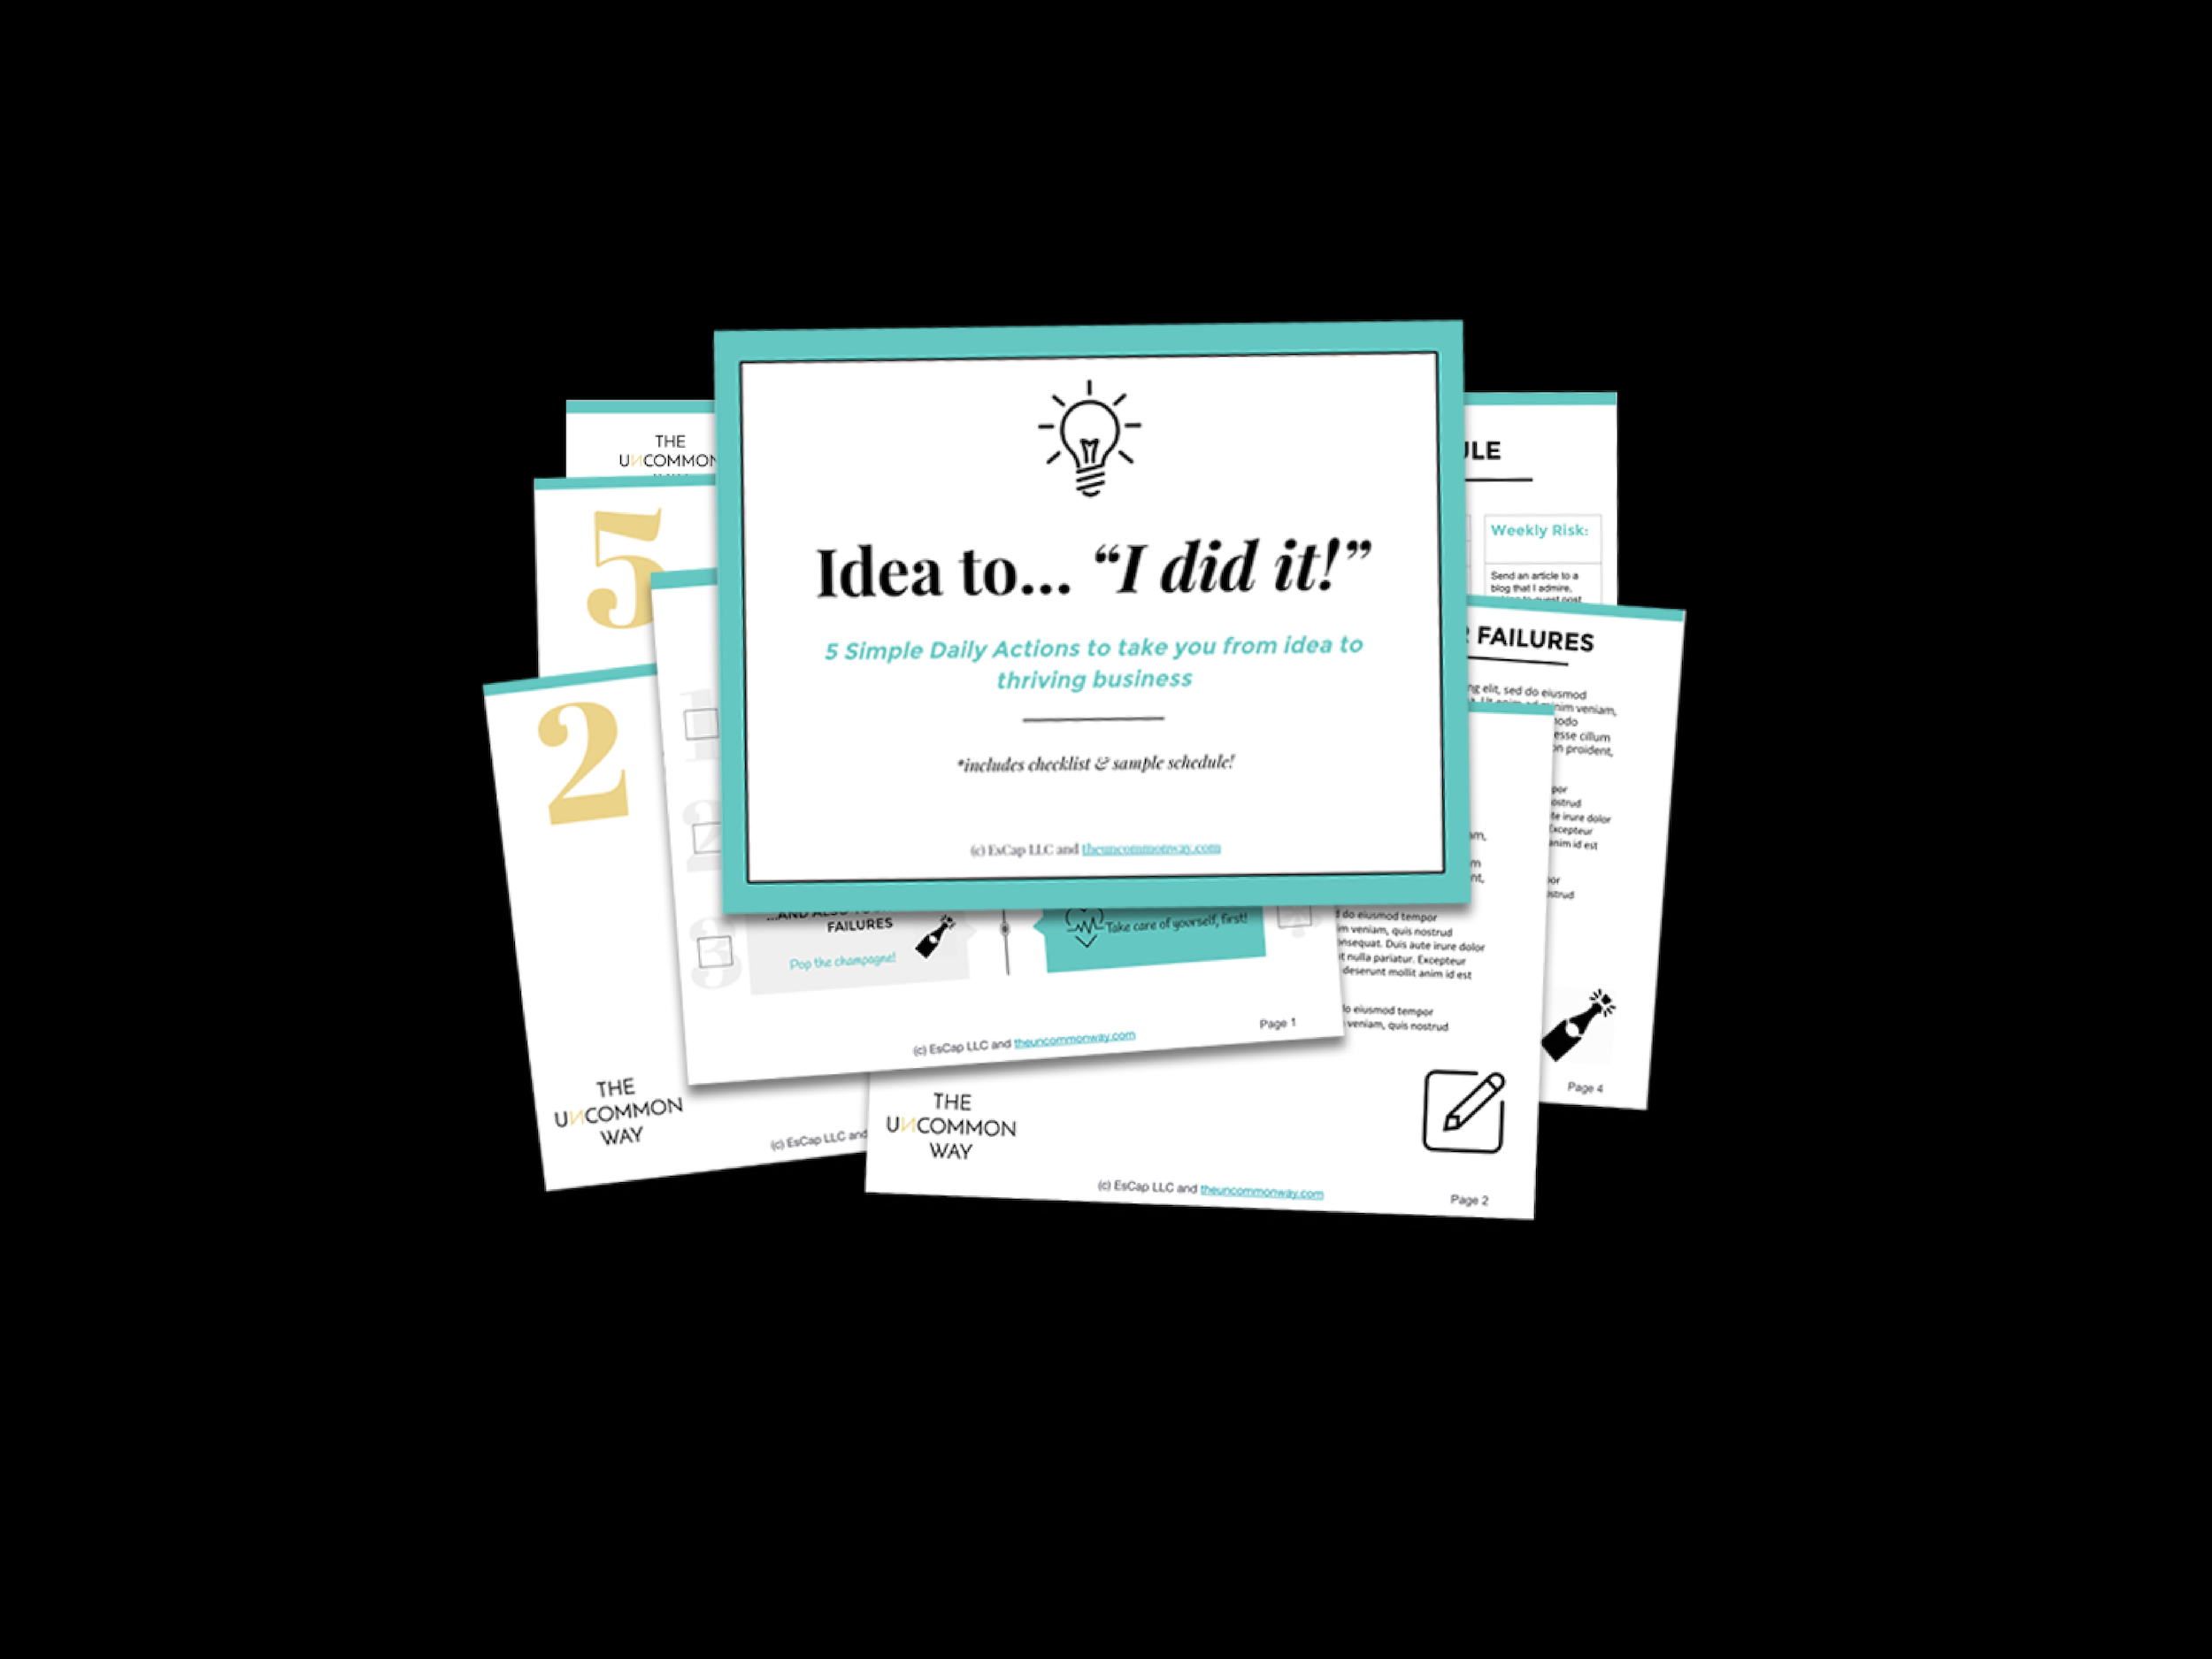 """TURN IDEAS INTO ACTUAL RESULTS. - GET YOUR FREE """"IDEA TO 'I DID IT!'"""" GUIDE5 SIMPLE DAILY ACTIONS FROM PROS THAT TAKE YOU FROM IDEA TO THRIVING BUSINESSGUIDE + DAILY CHECKLIST + SAMPLE SCHEDULE = REAL ACTION"""